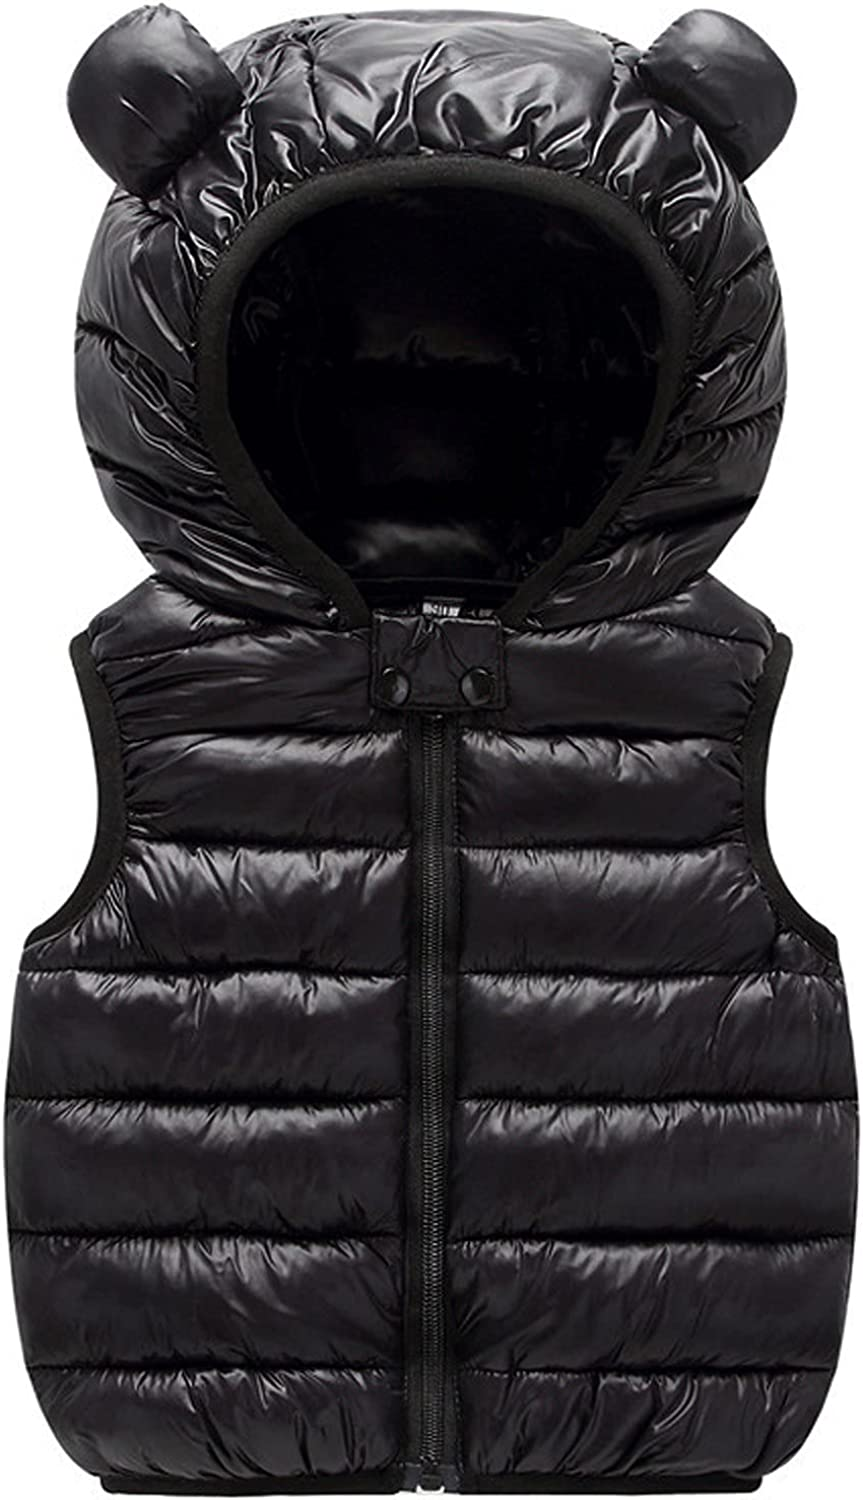 ZXCC Spring new work one after another Winter Down Oklahoma City Mall Coat for Kids Baby Sleeveless Boys Girls Cartoo